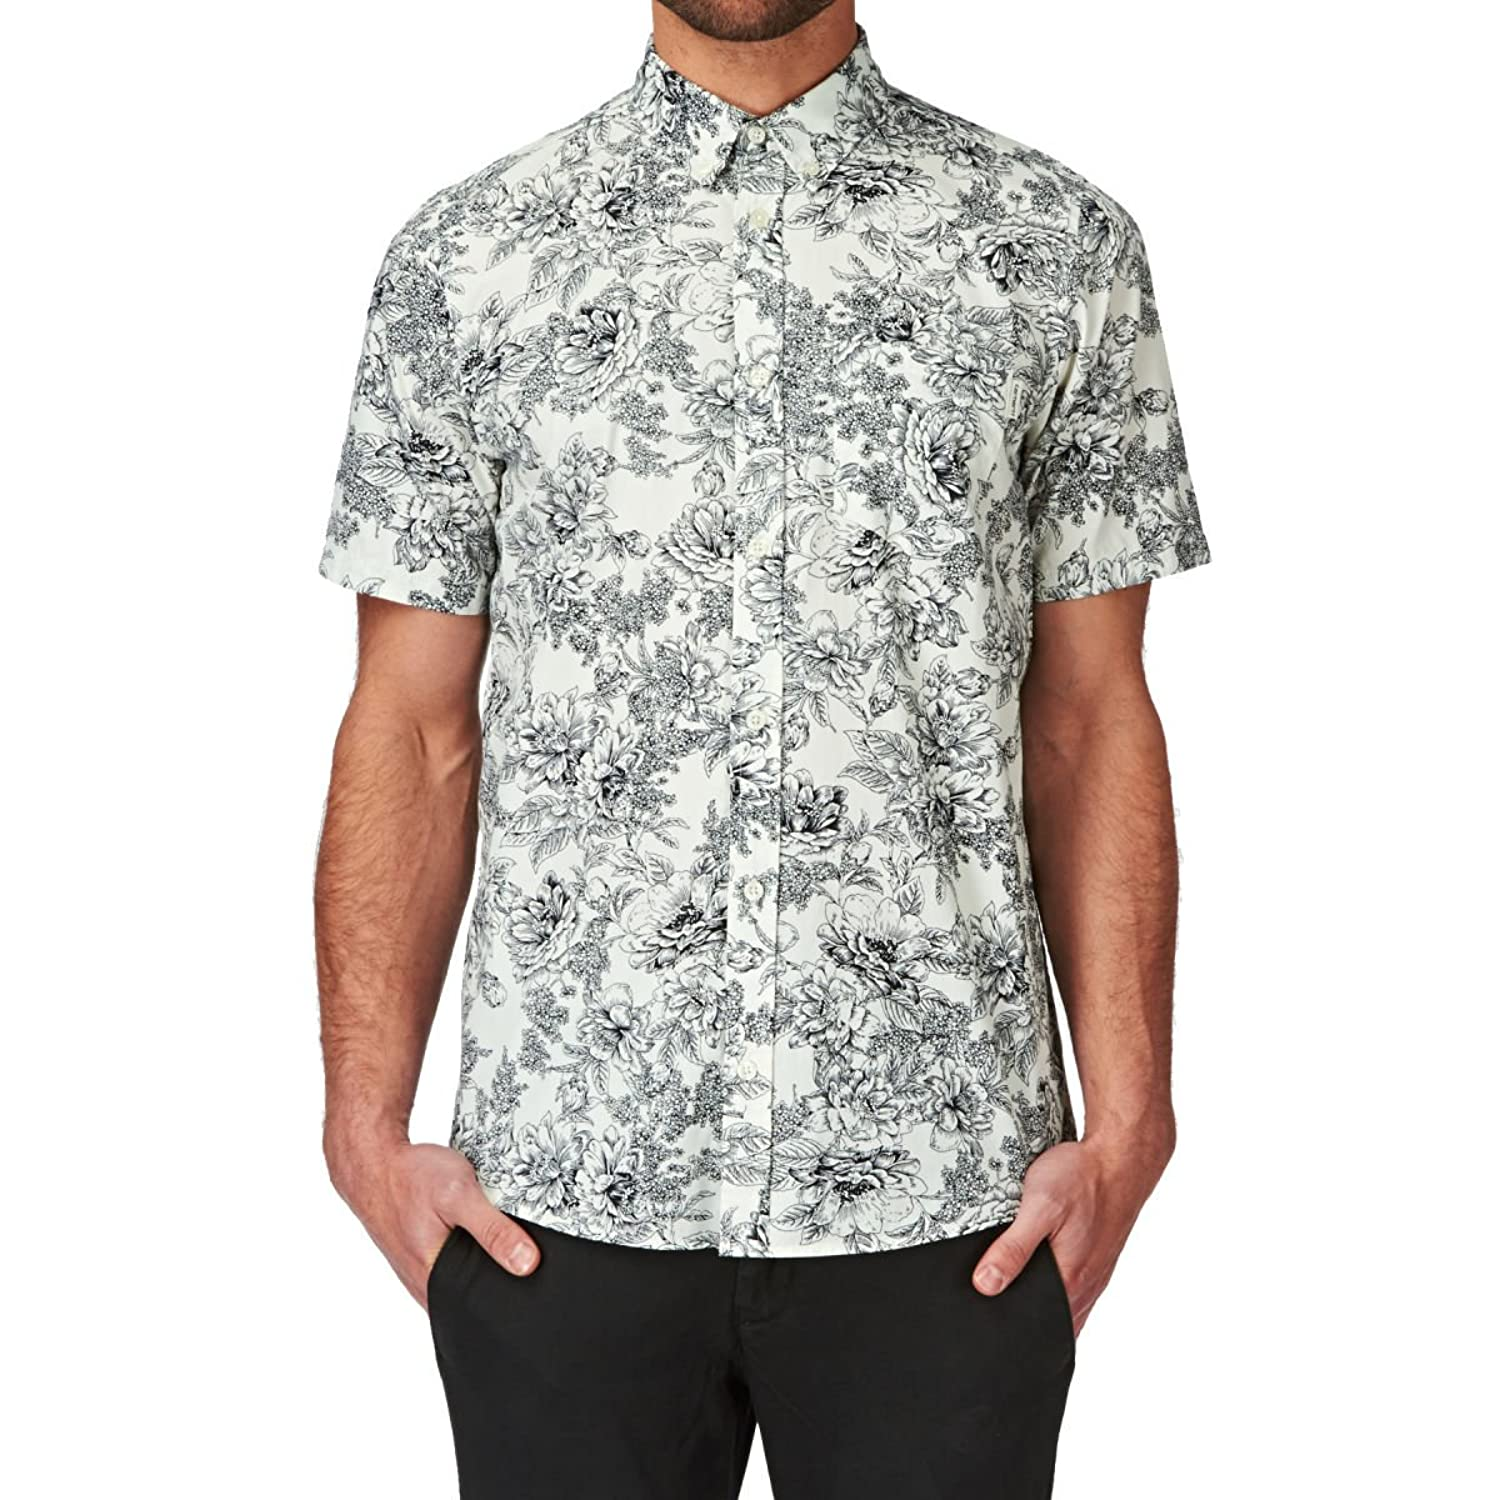 Carhartt Men's Shortsleeved Floral Shirt, White